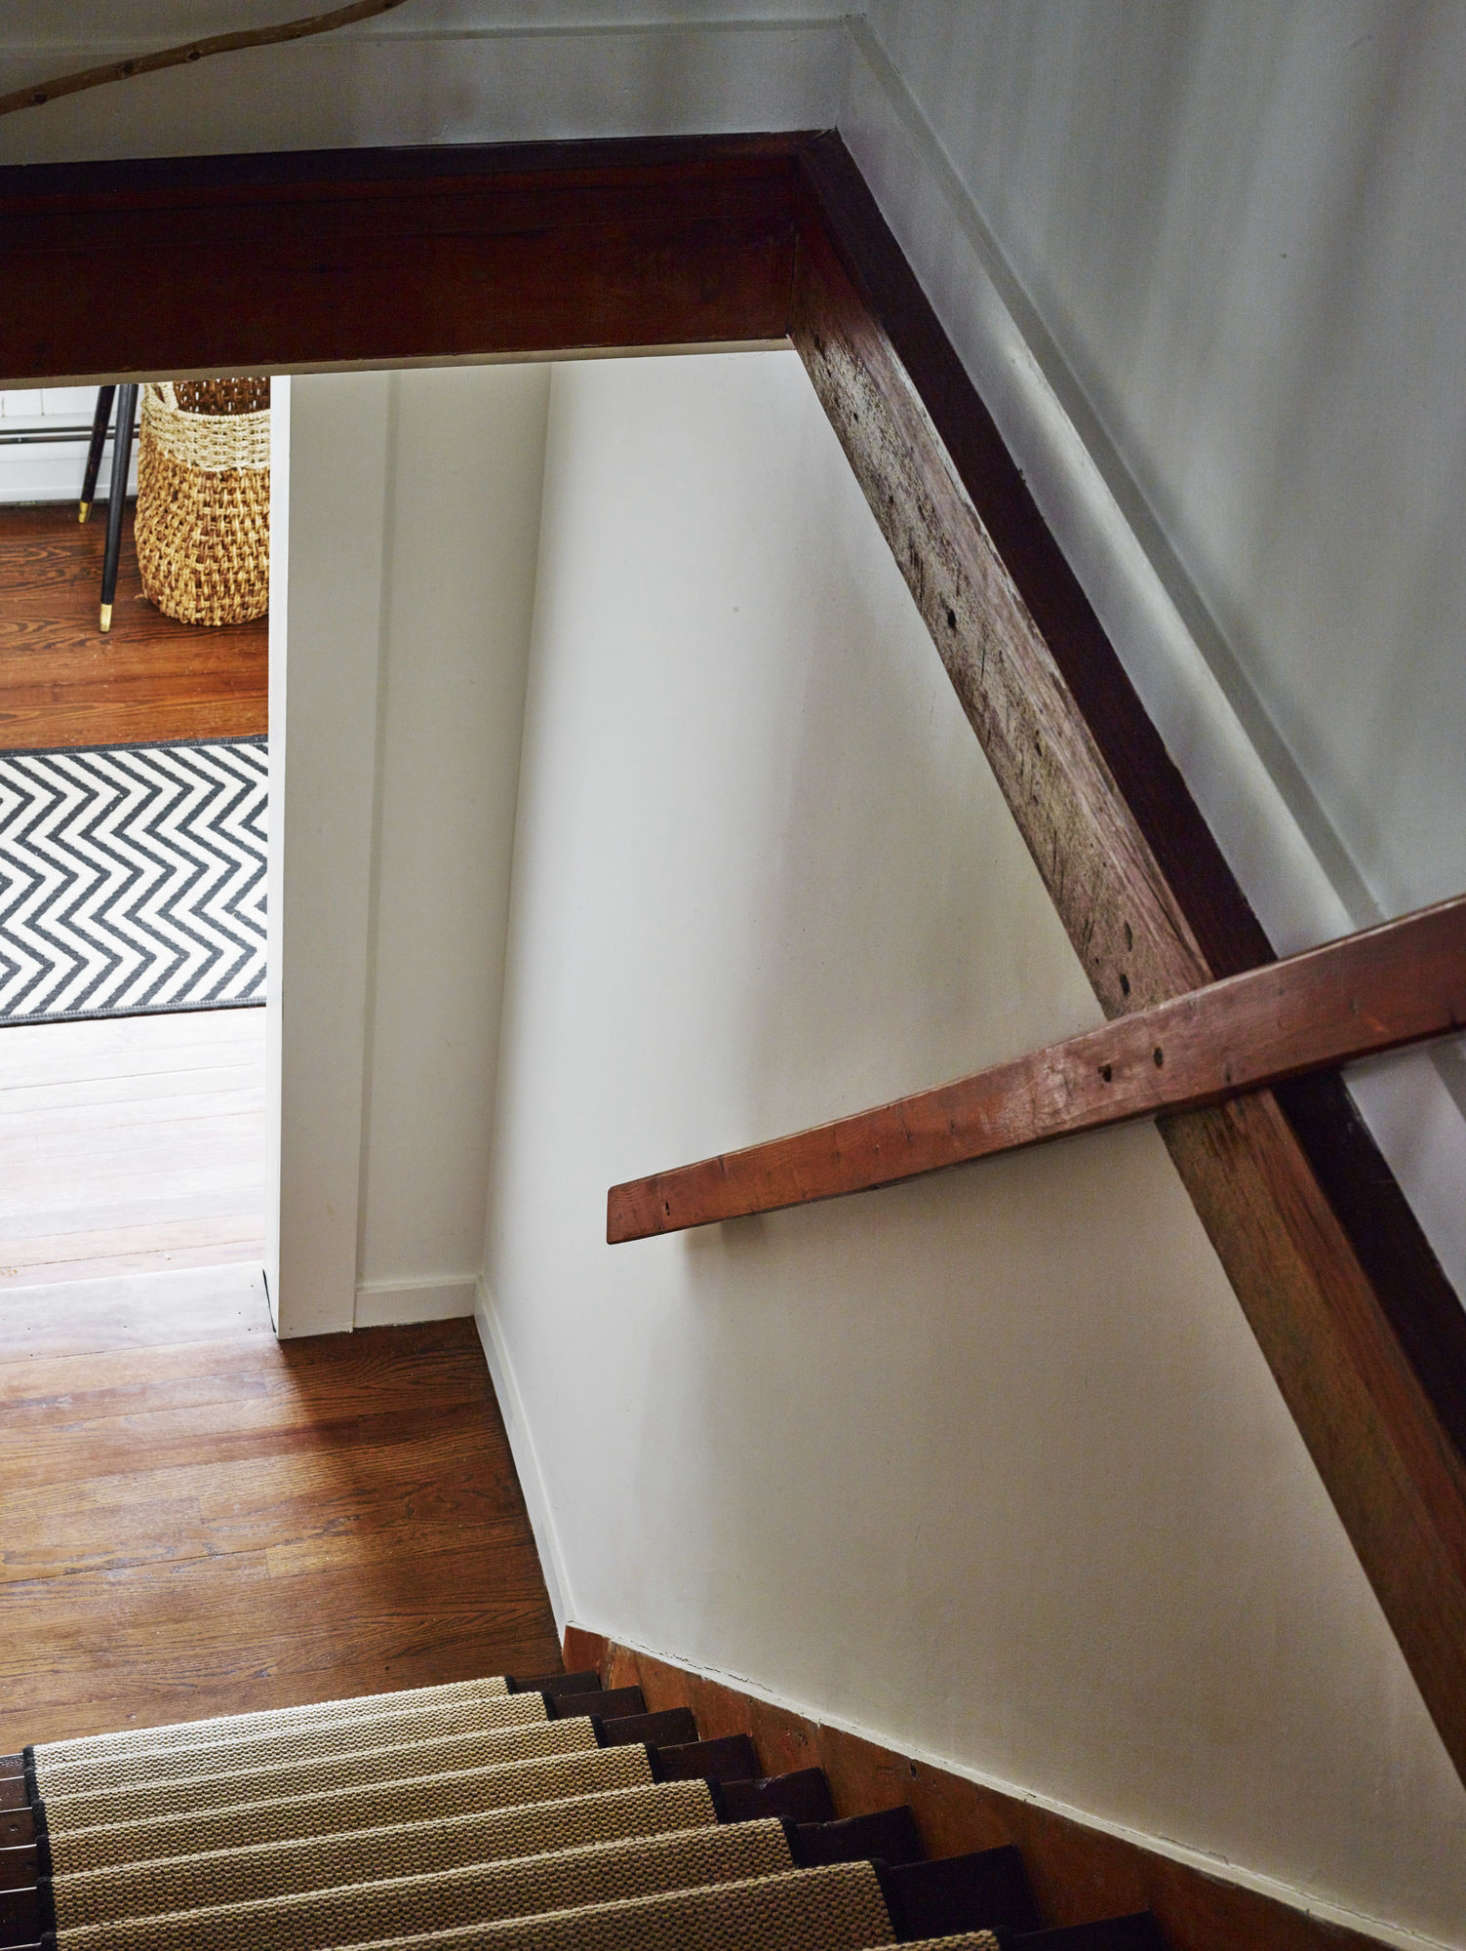 Remodeling 101: All About Stair Runners - Remodelista